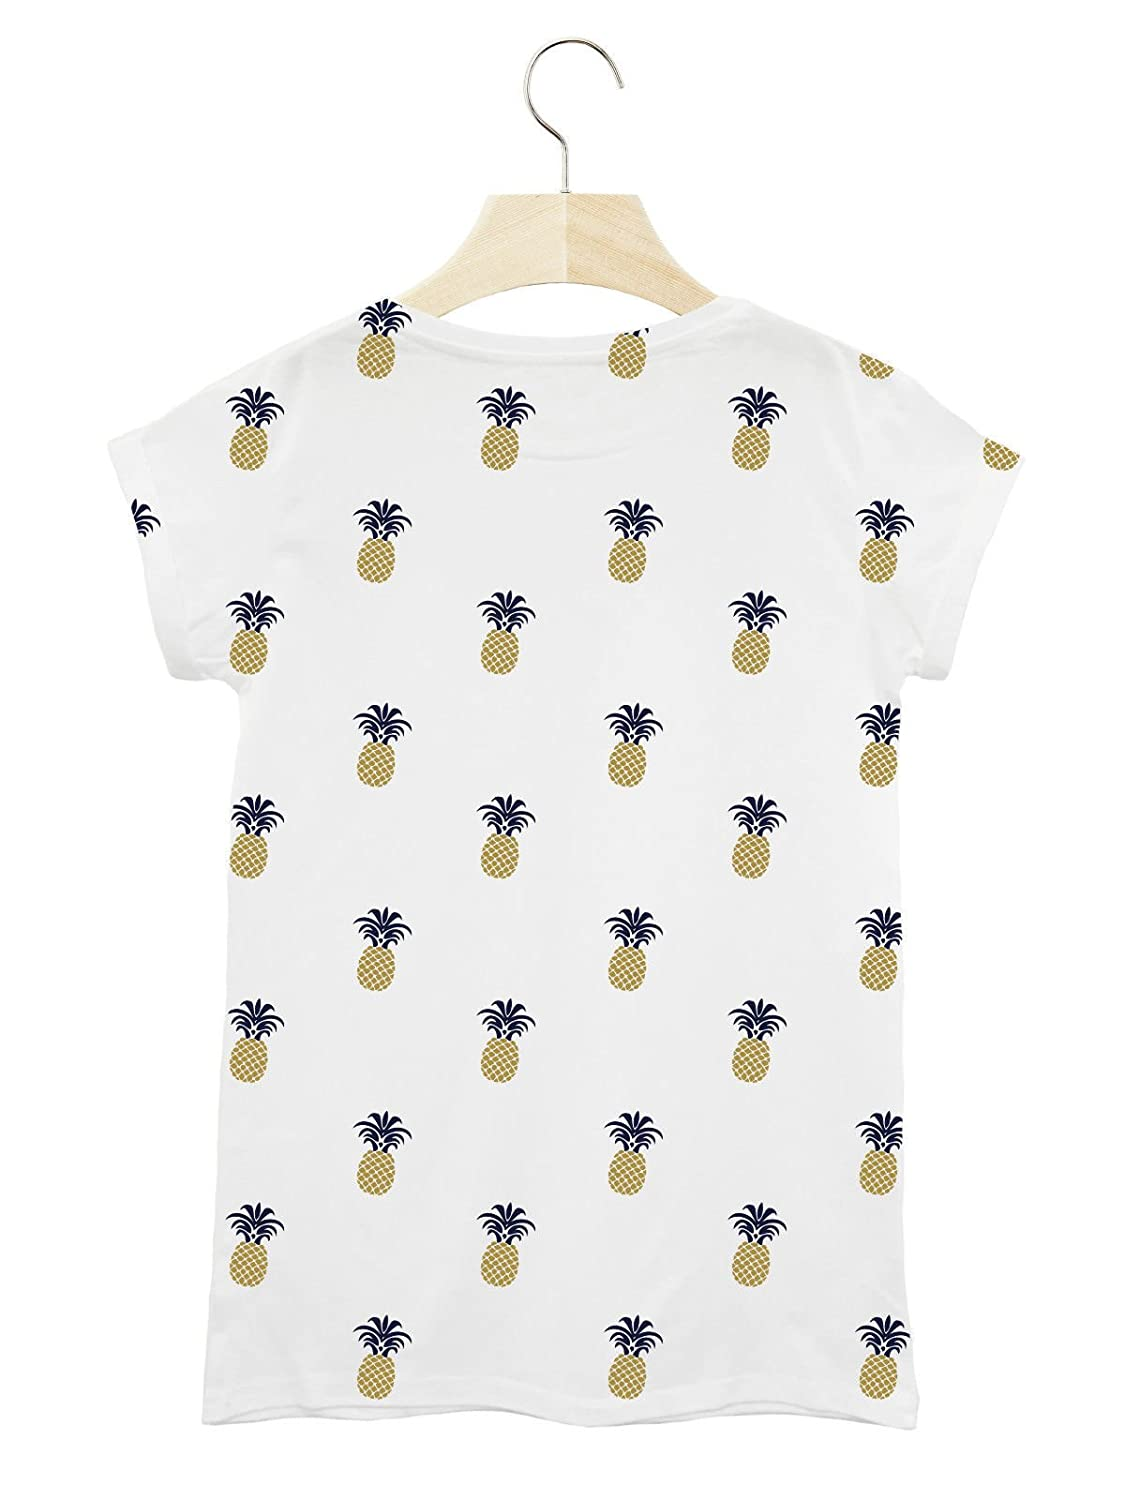 BATCH1 PINEAPPLE REPEAT FASHION PRINT BRITISH SUMMER HOLIDAY WOMENS T-SHIRT